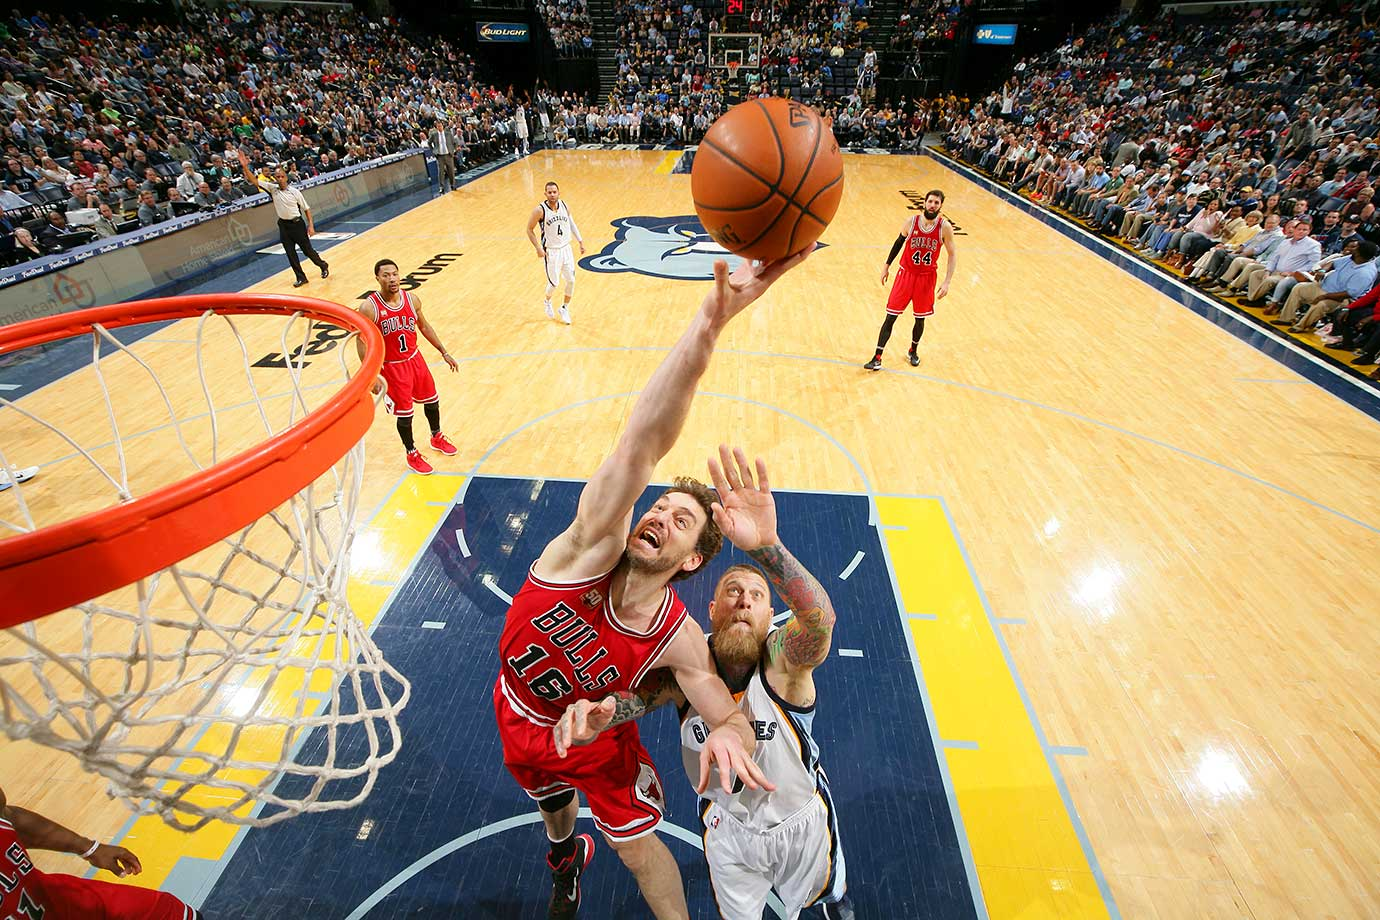 Pau Gasol of the Chicago Bulls goes up for a rebound against the Memphis Grizzlies.